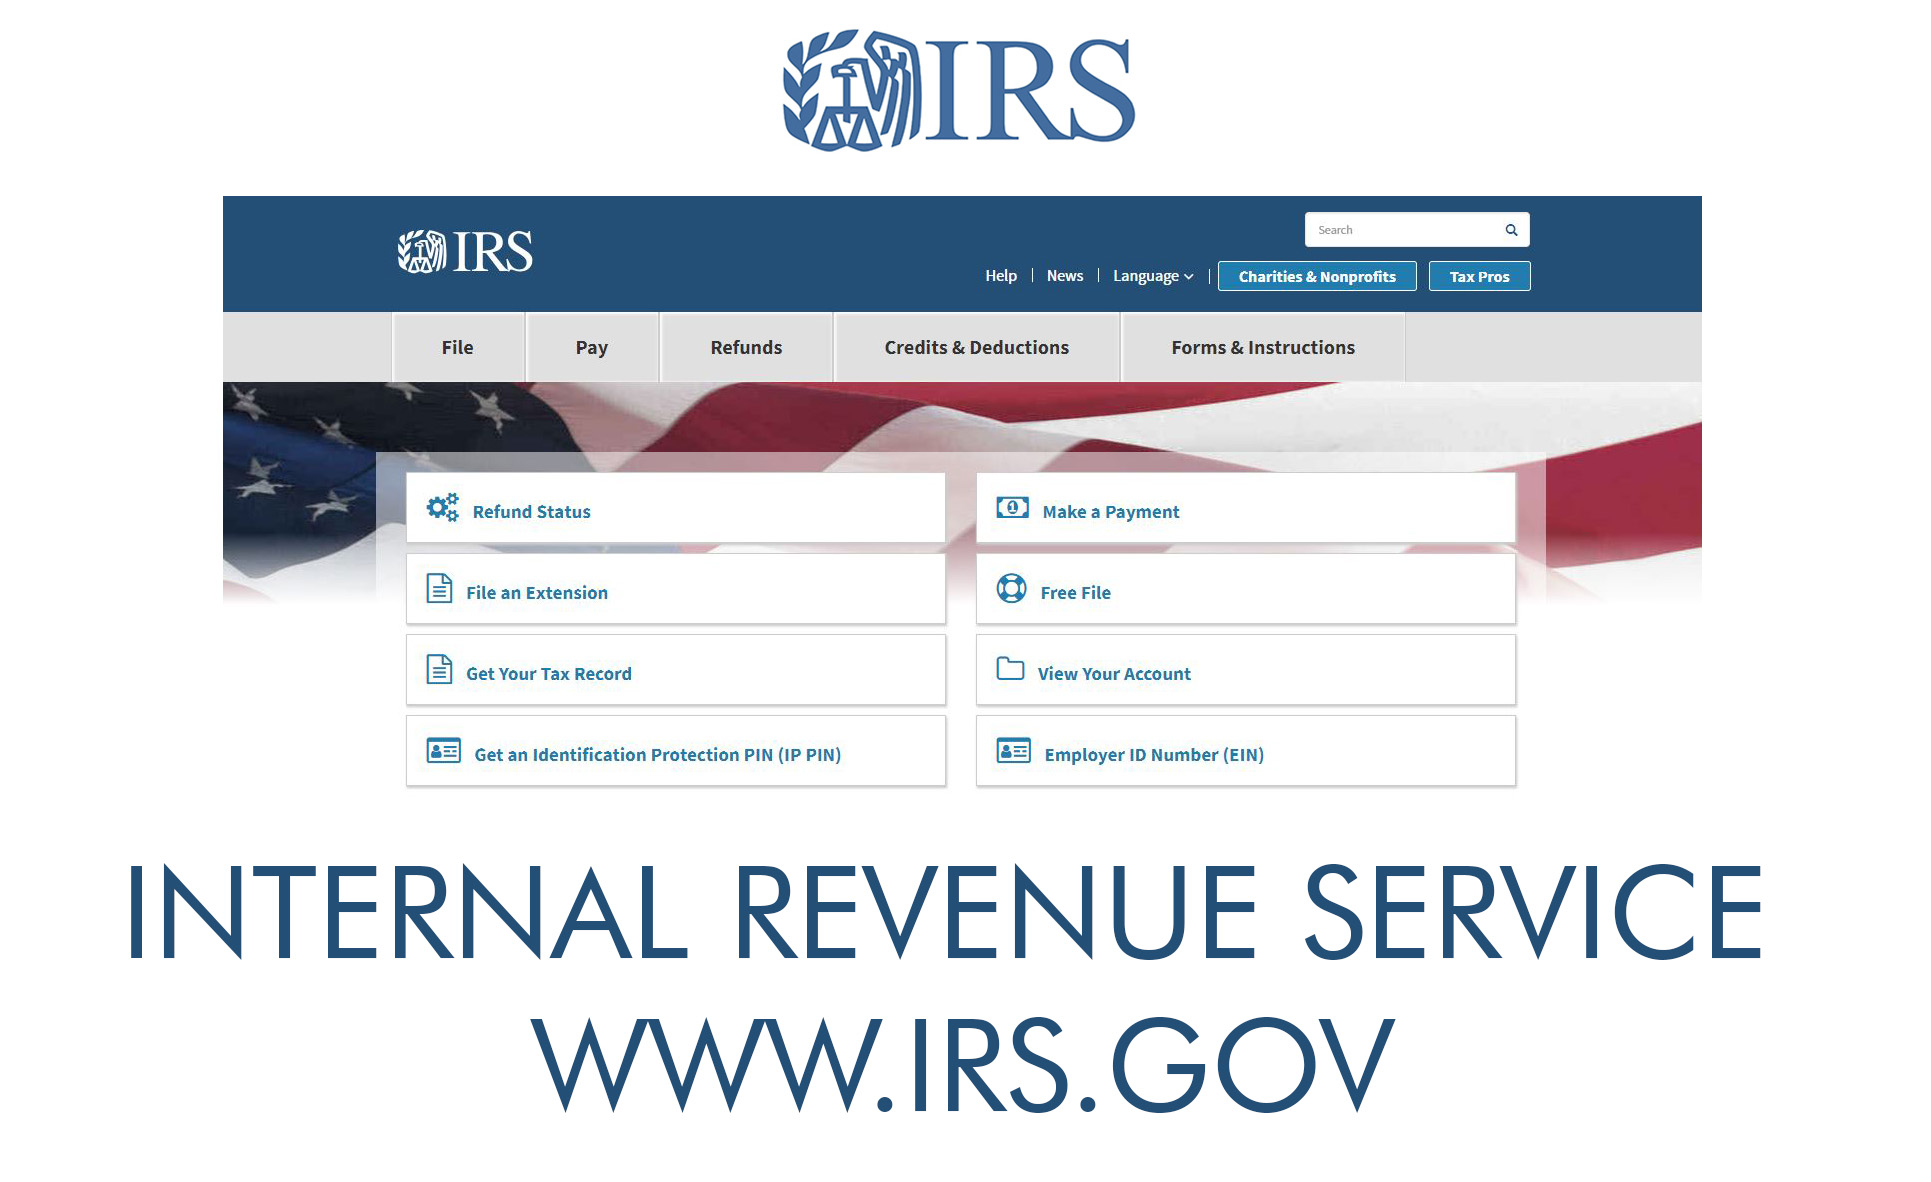 IRS - Internal Revenue Service | www.irs.gov